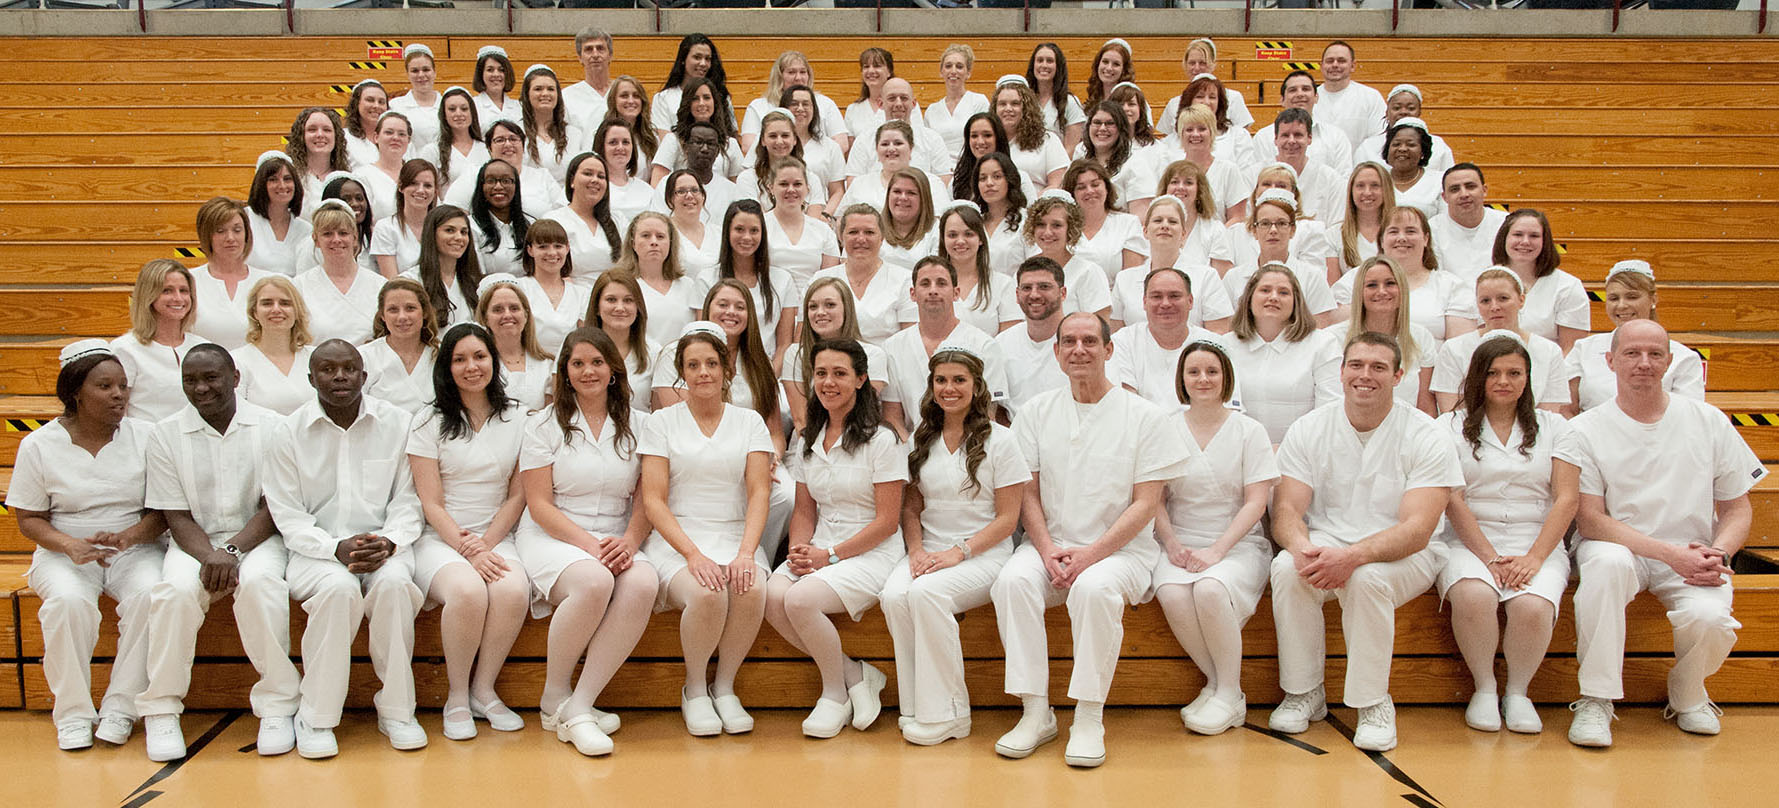 Graduates Welcomed Into The Nursing Profession During 2014